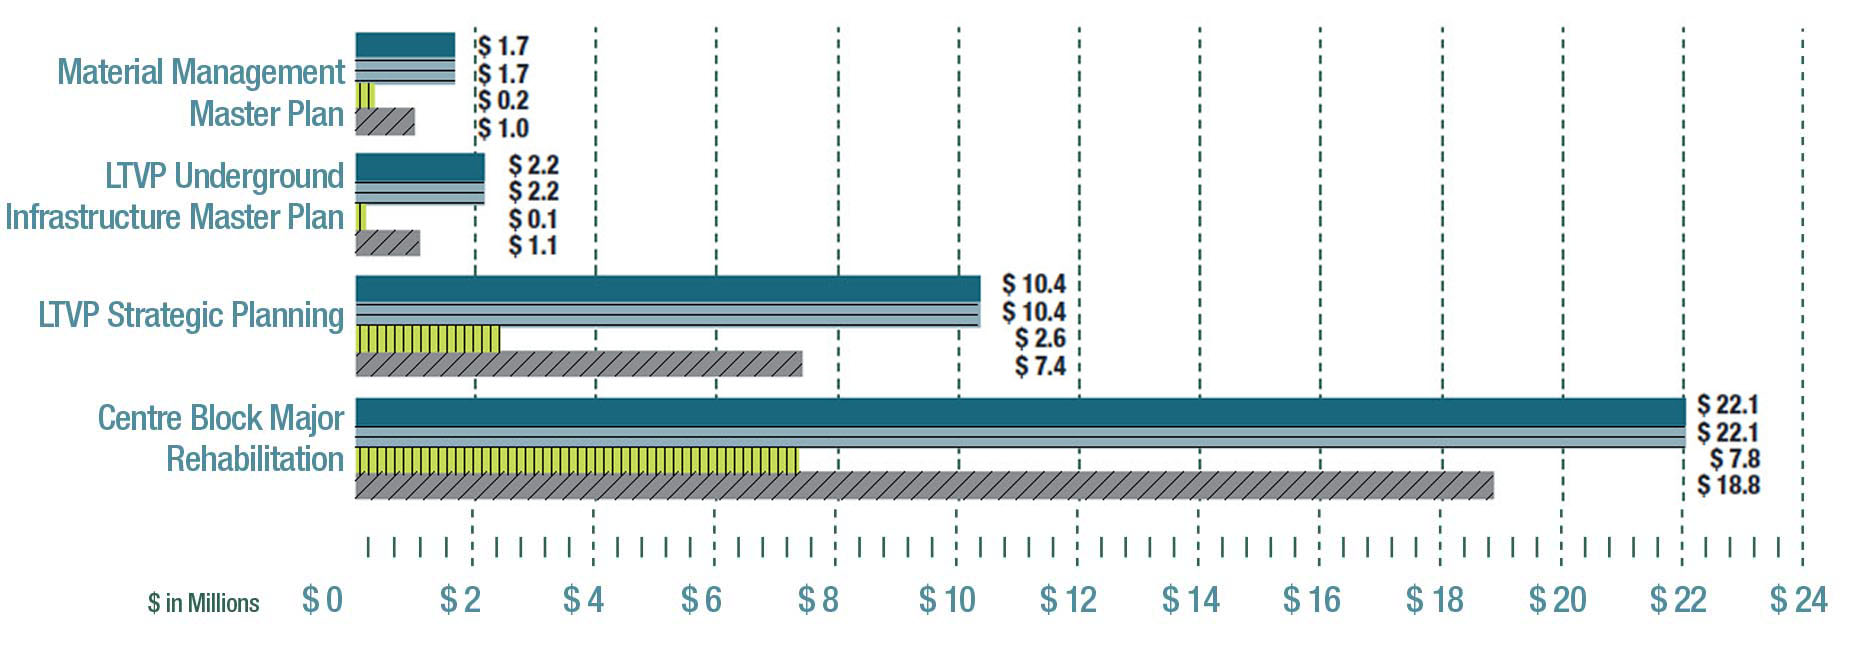 Figure 3.05 – planning Program project spending - fiscal year 2014-15 (in millions of dollars) - Description of the chart in the table below.